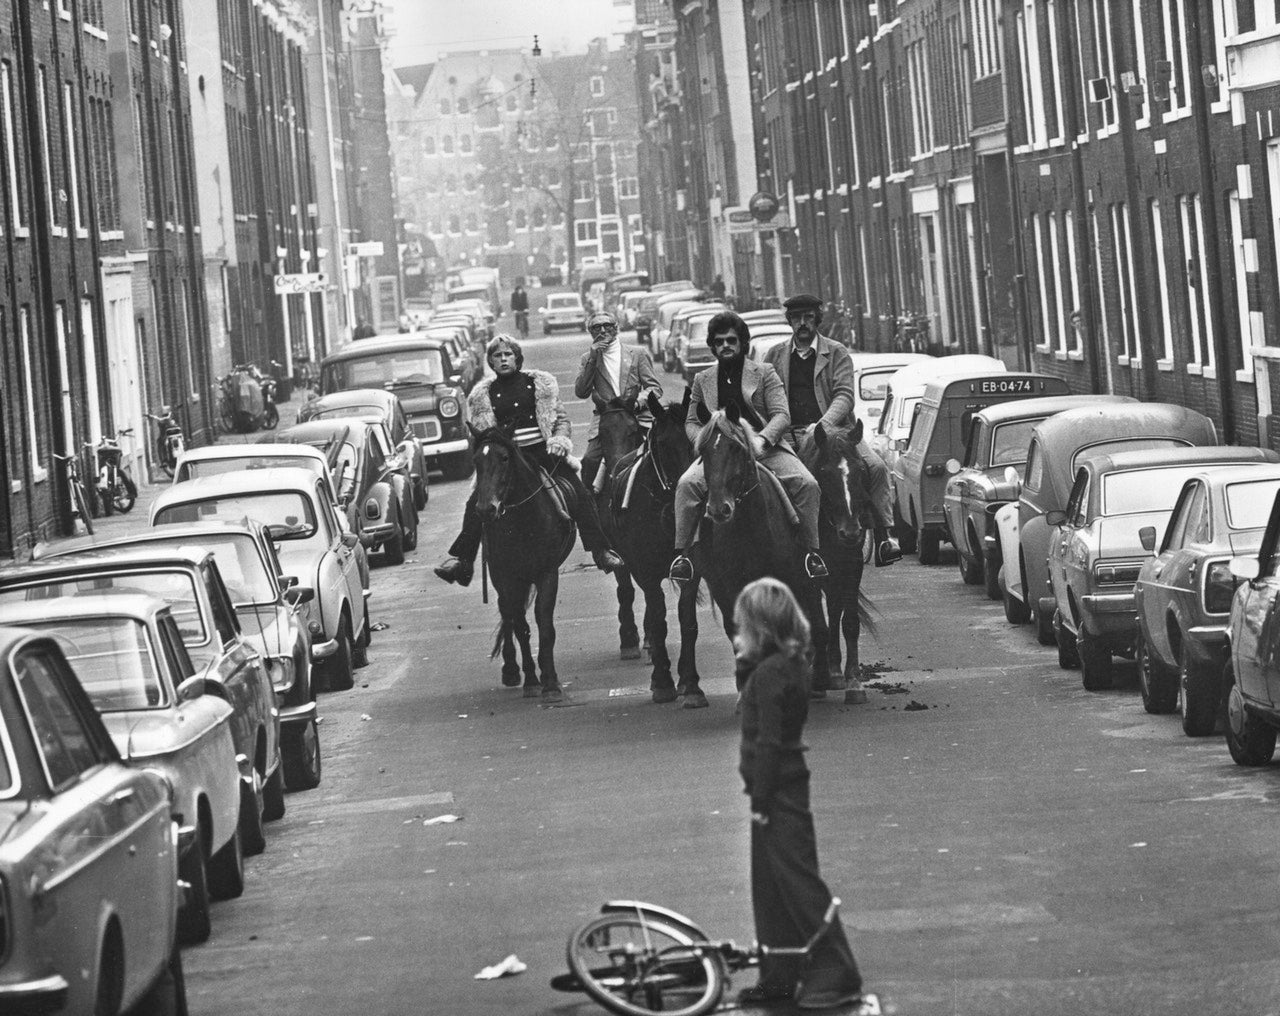 The Dutch rode horses on their highways during the 1970s oil crisis